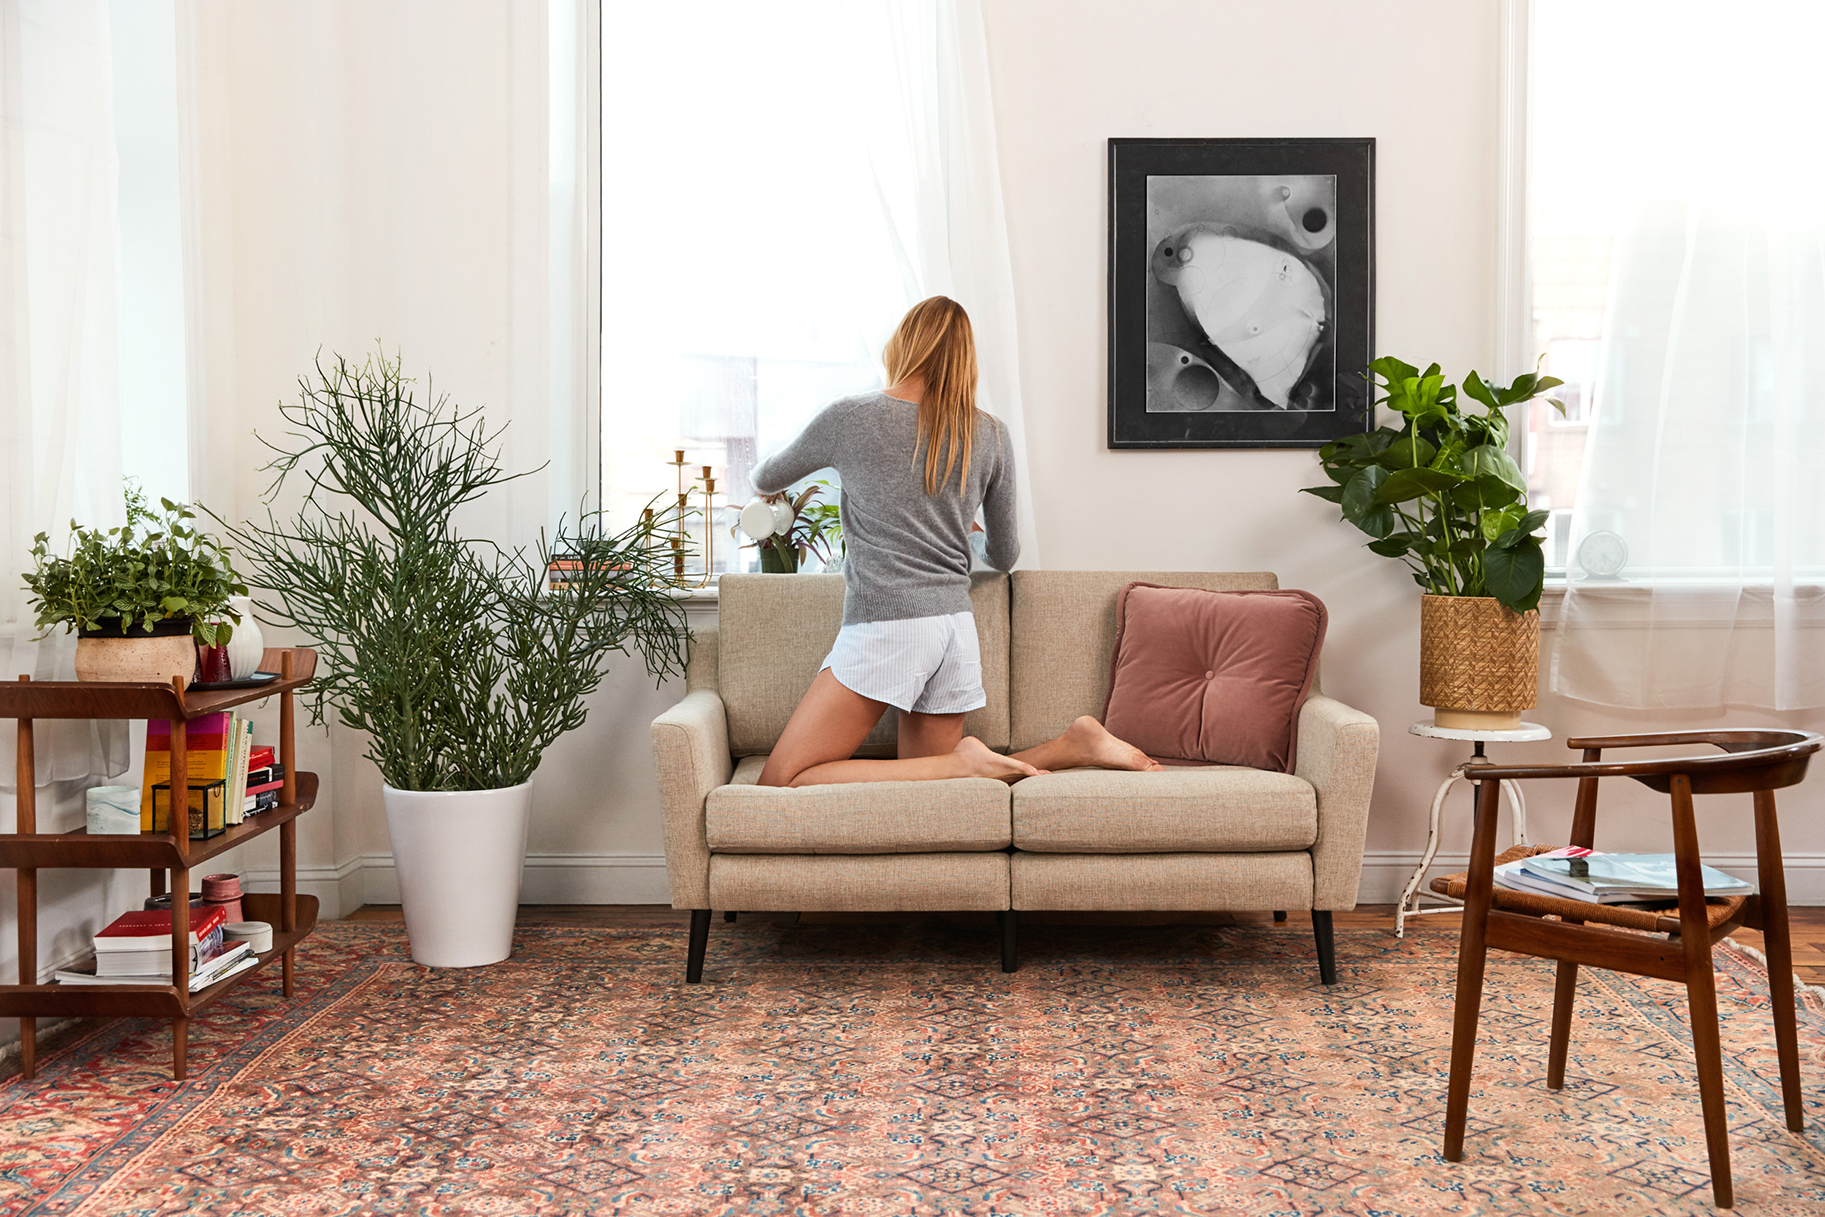 Outstanding Review Burrows Modular Couch In A Box Home Design Inzonedesignstudio Interior Chair Design Inzonedesignstudiocom